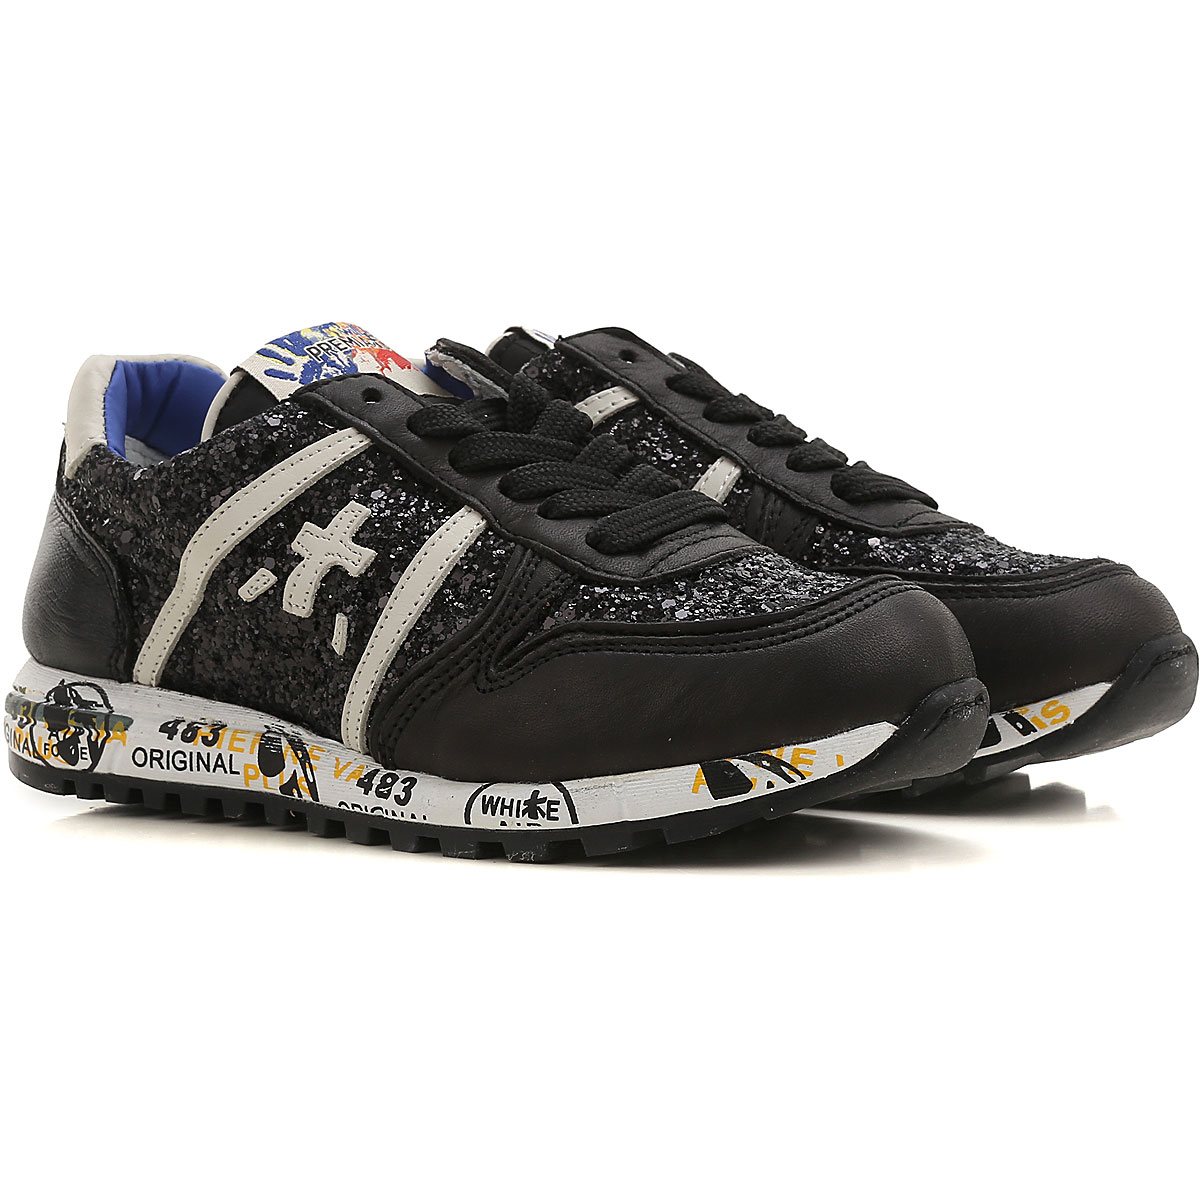 Premiata Kids Shoes for Girls On Sale, Black, Leather, 2019, 31 35